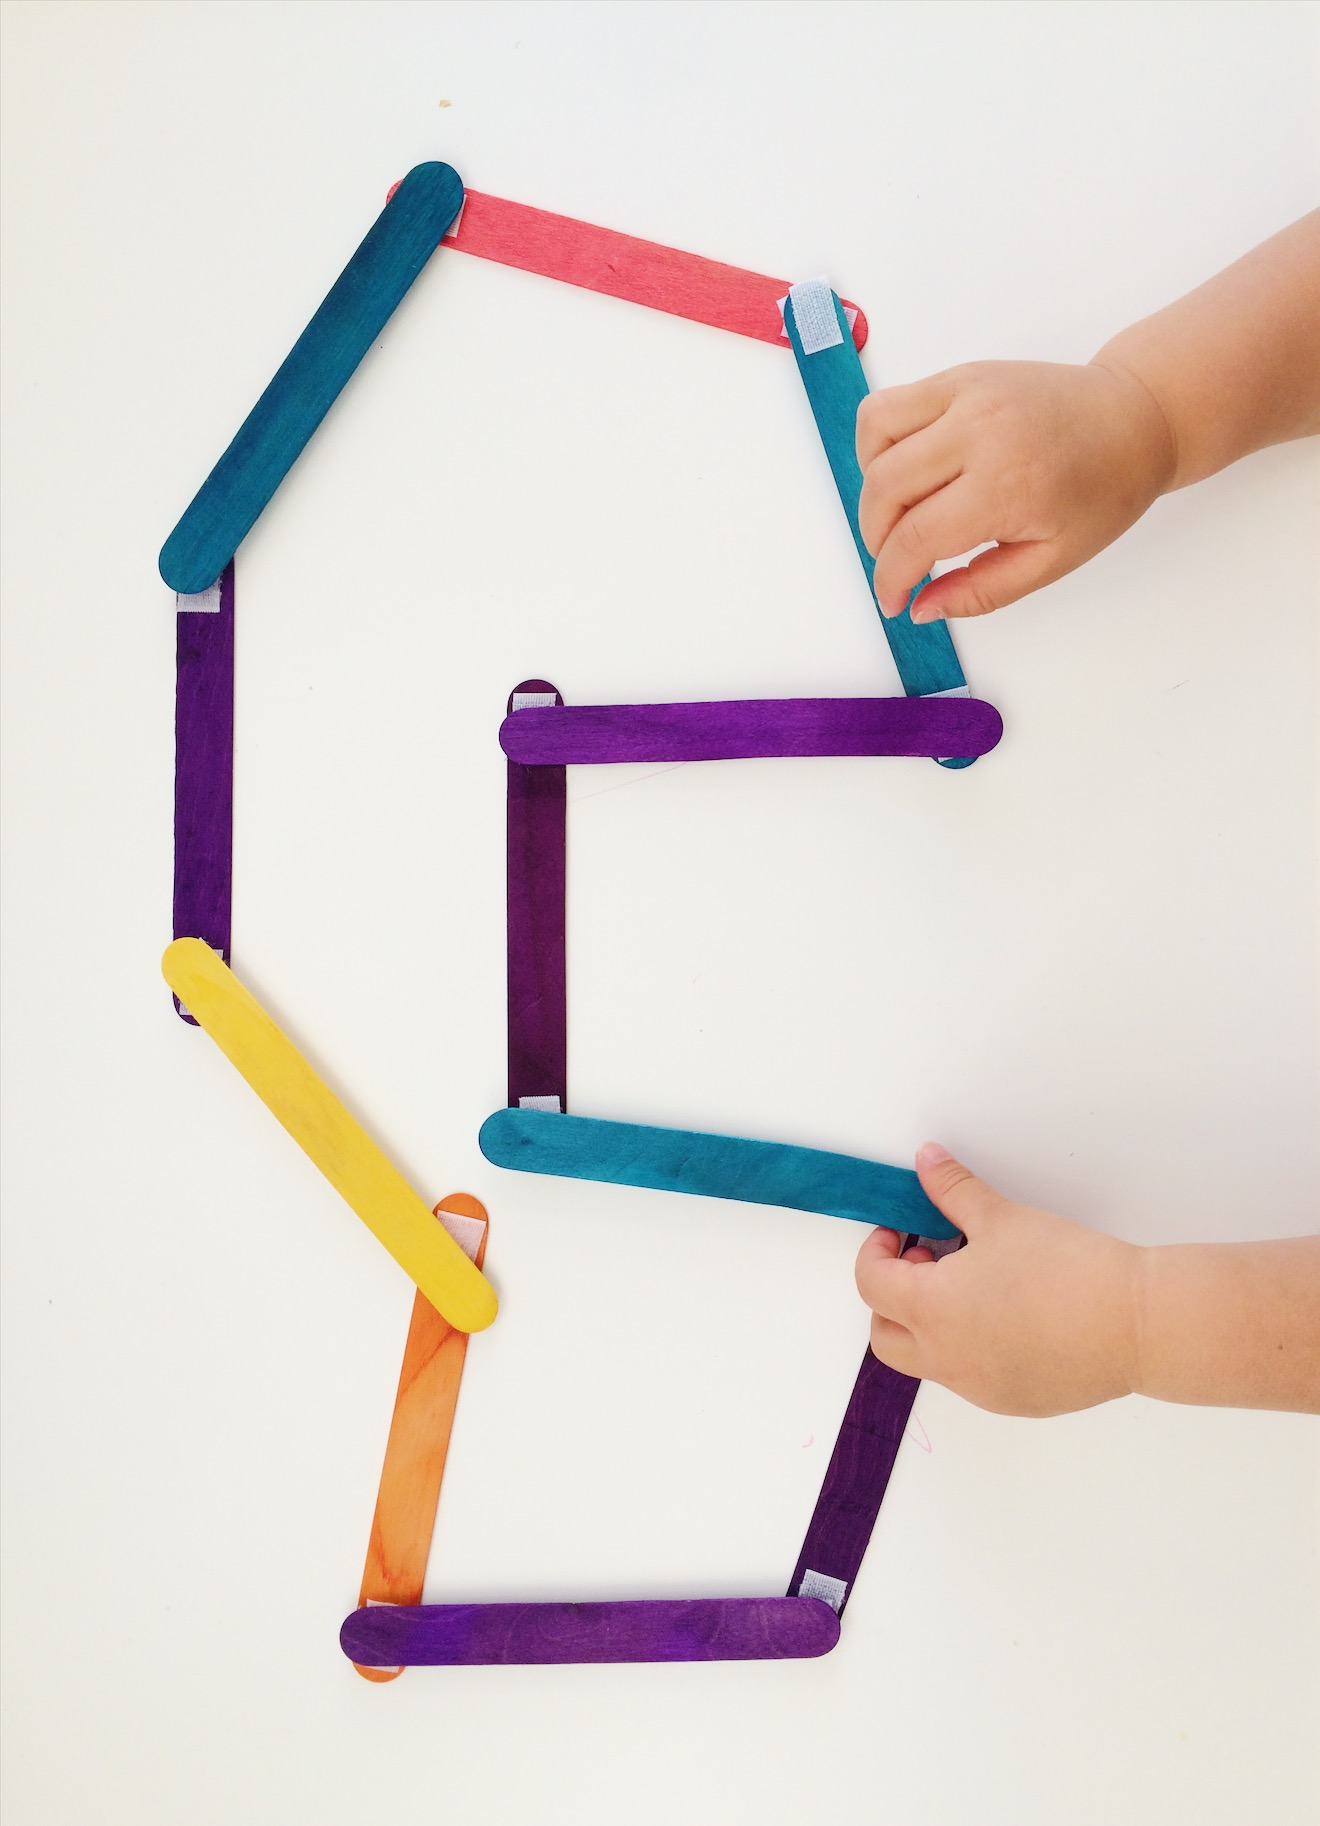 Toddler making a shape on white tabel with coloured Popsicle sticks